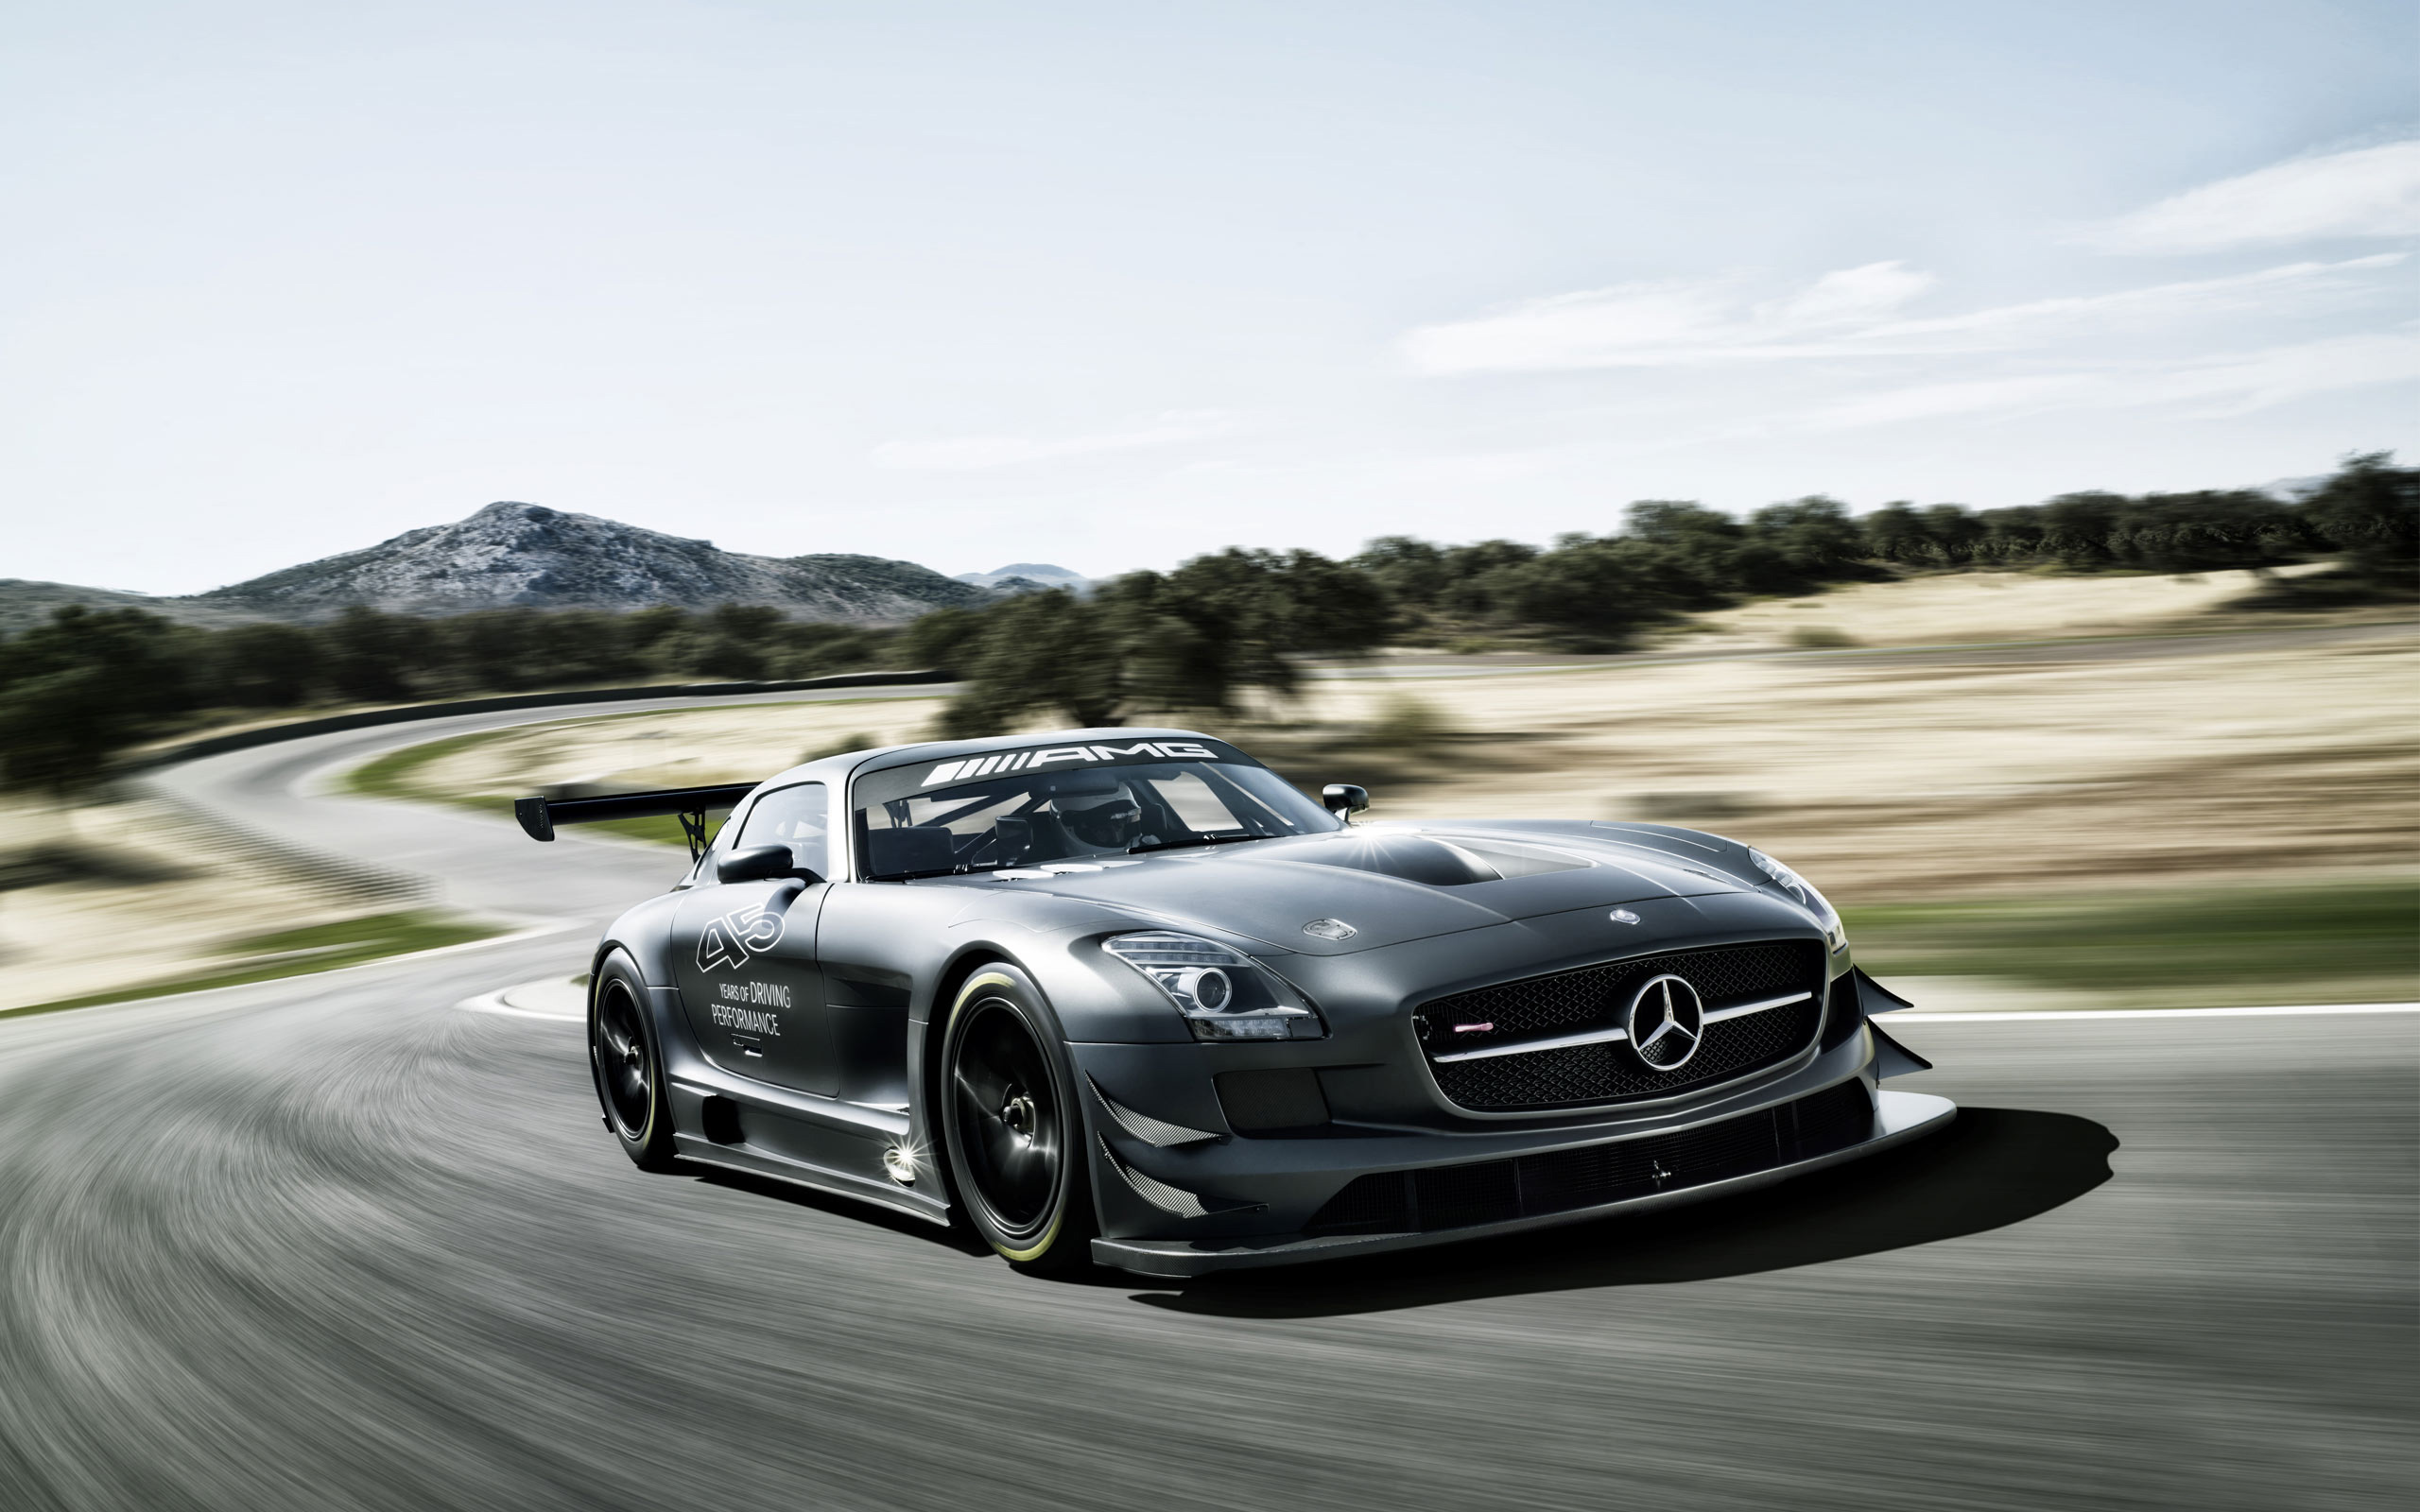 mercedes benz sls gt3 2 wallpaper hd car wallpapers id 3101. Black Bedroom Furniture Sets. Home Design Ideas